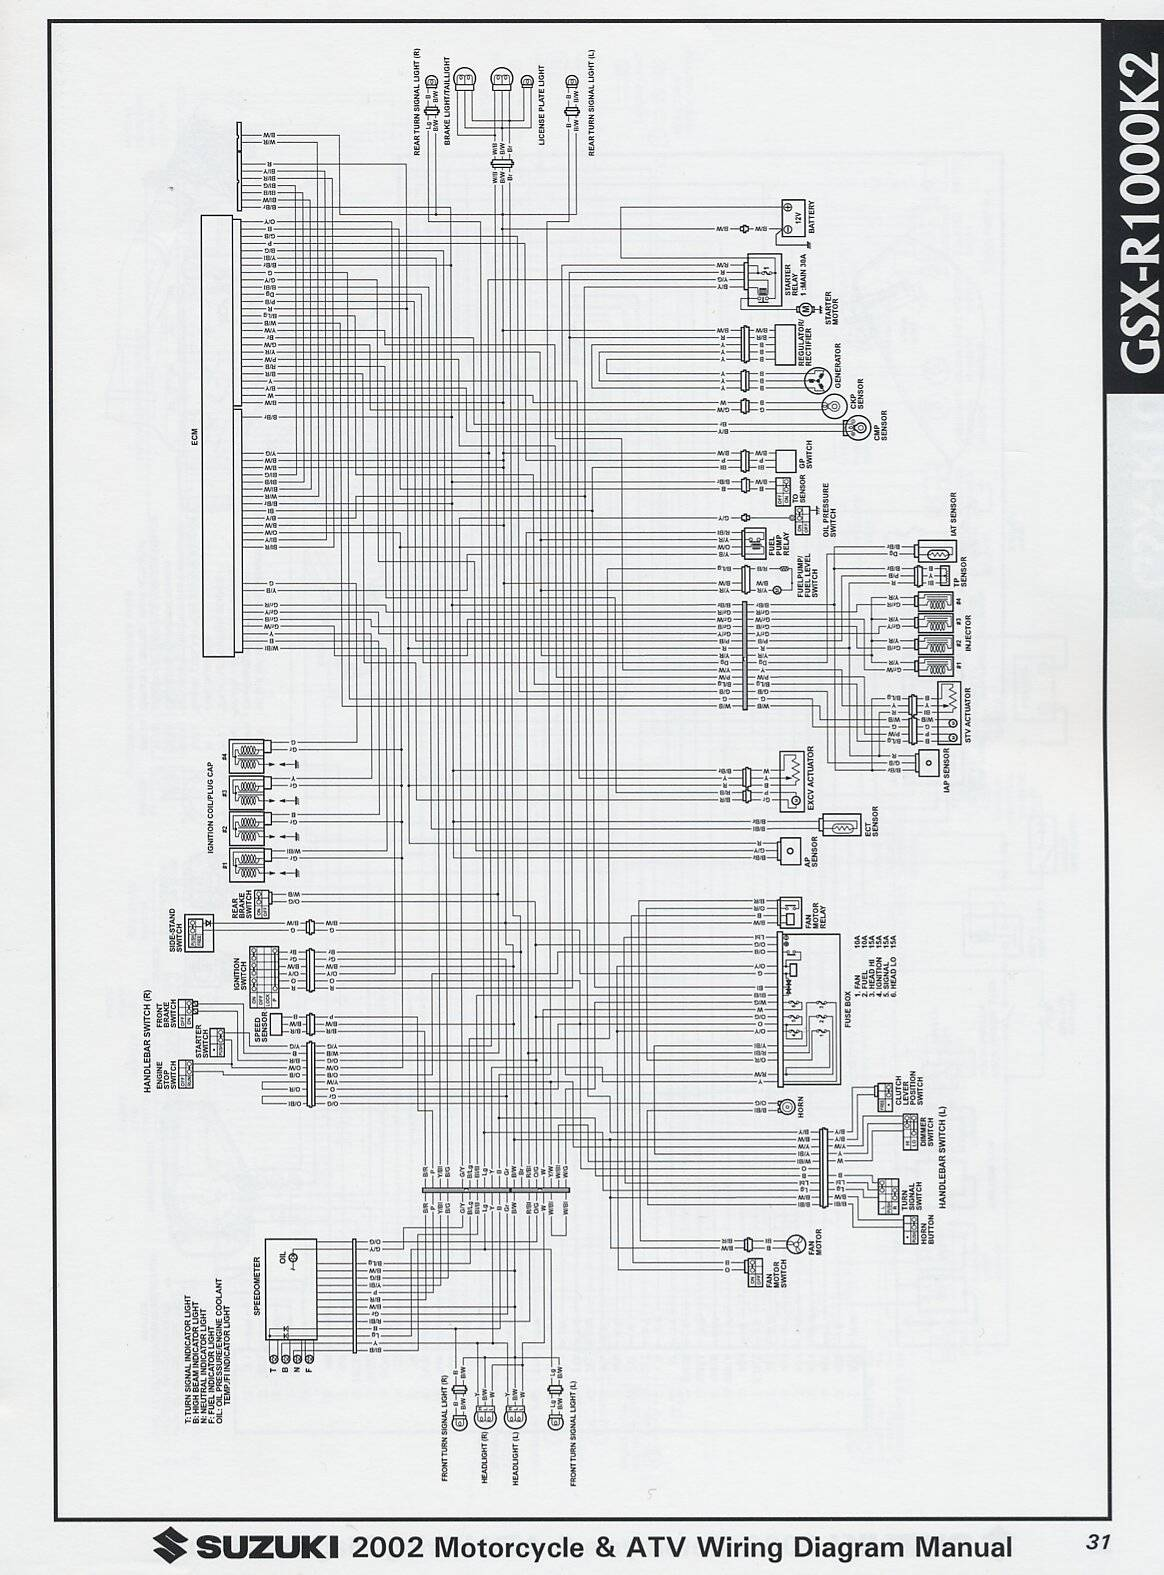 suzuki gsx r 600 wiring diagram schematics wiring data u2022 rh case hub co Custom 2008 Suzuki Gsxr 600 2006 suzuki gsxr 600 wiring diagram